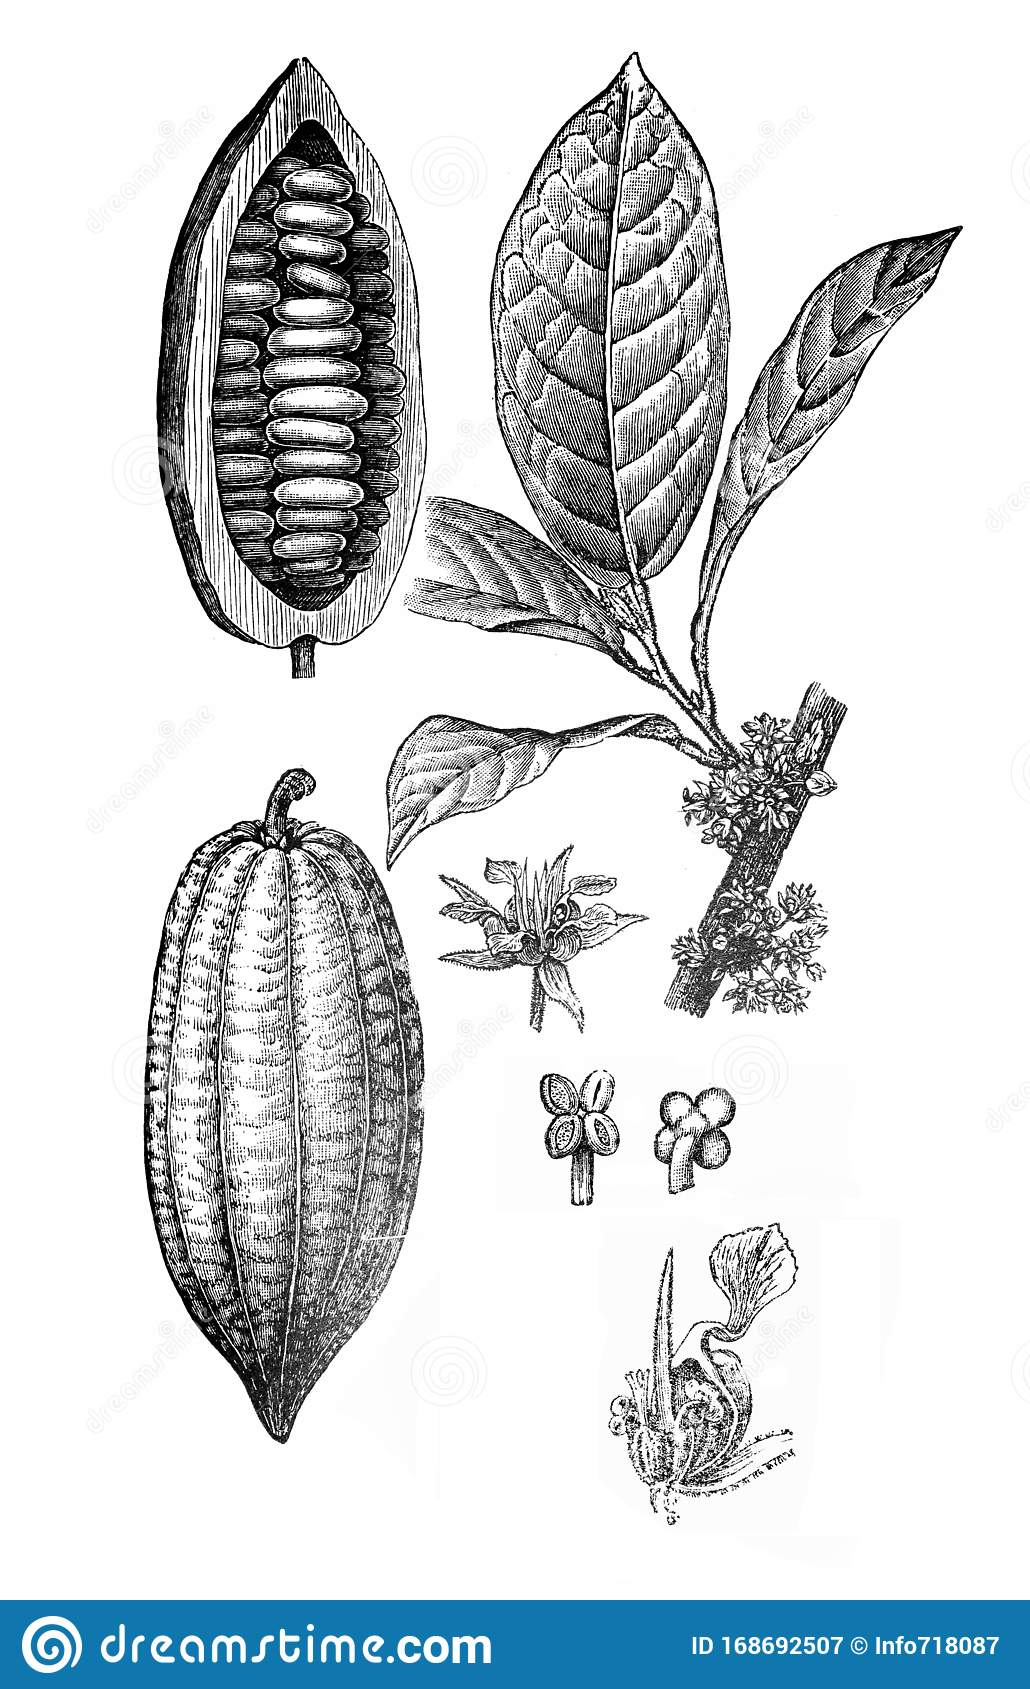 Theobroma Cacao Cacao Tree Cocoa Tree With Fruits A Vintage Illustration From Brockhaus Konversations Lexikon 1908 Stock Illustration Illustration Of Food Farmers 168692507